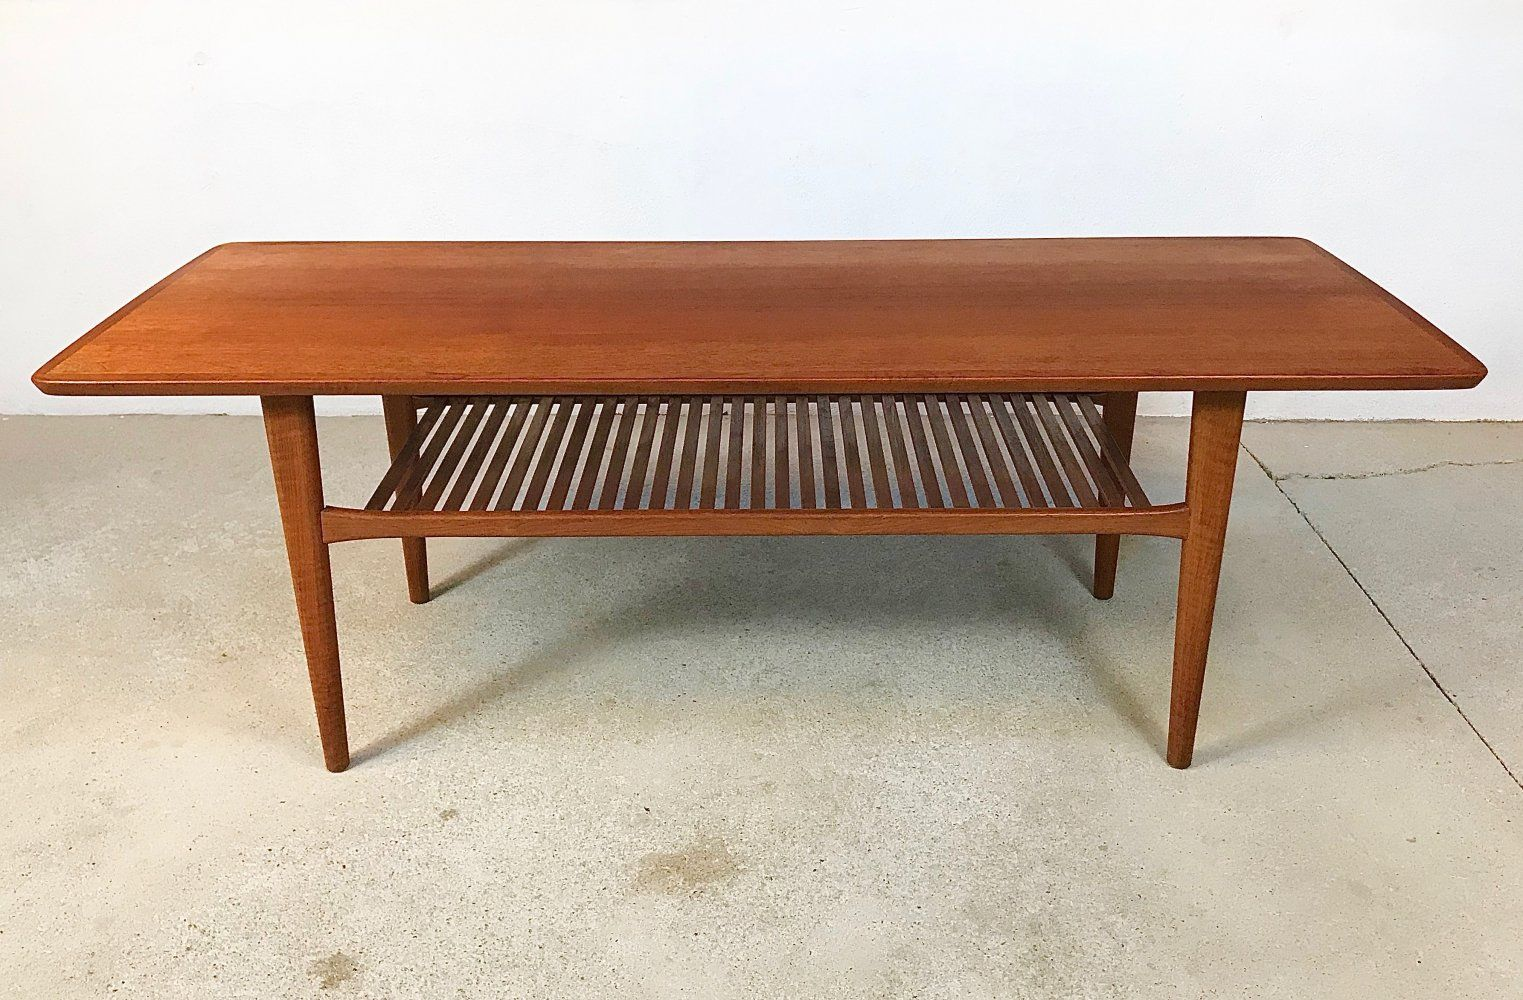 For Sale Vintage Danish Teak Coffee Table With Slatted Tray